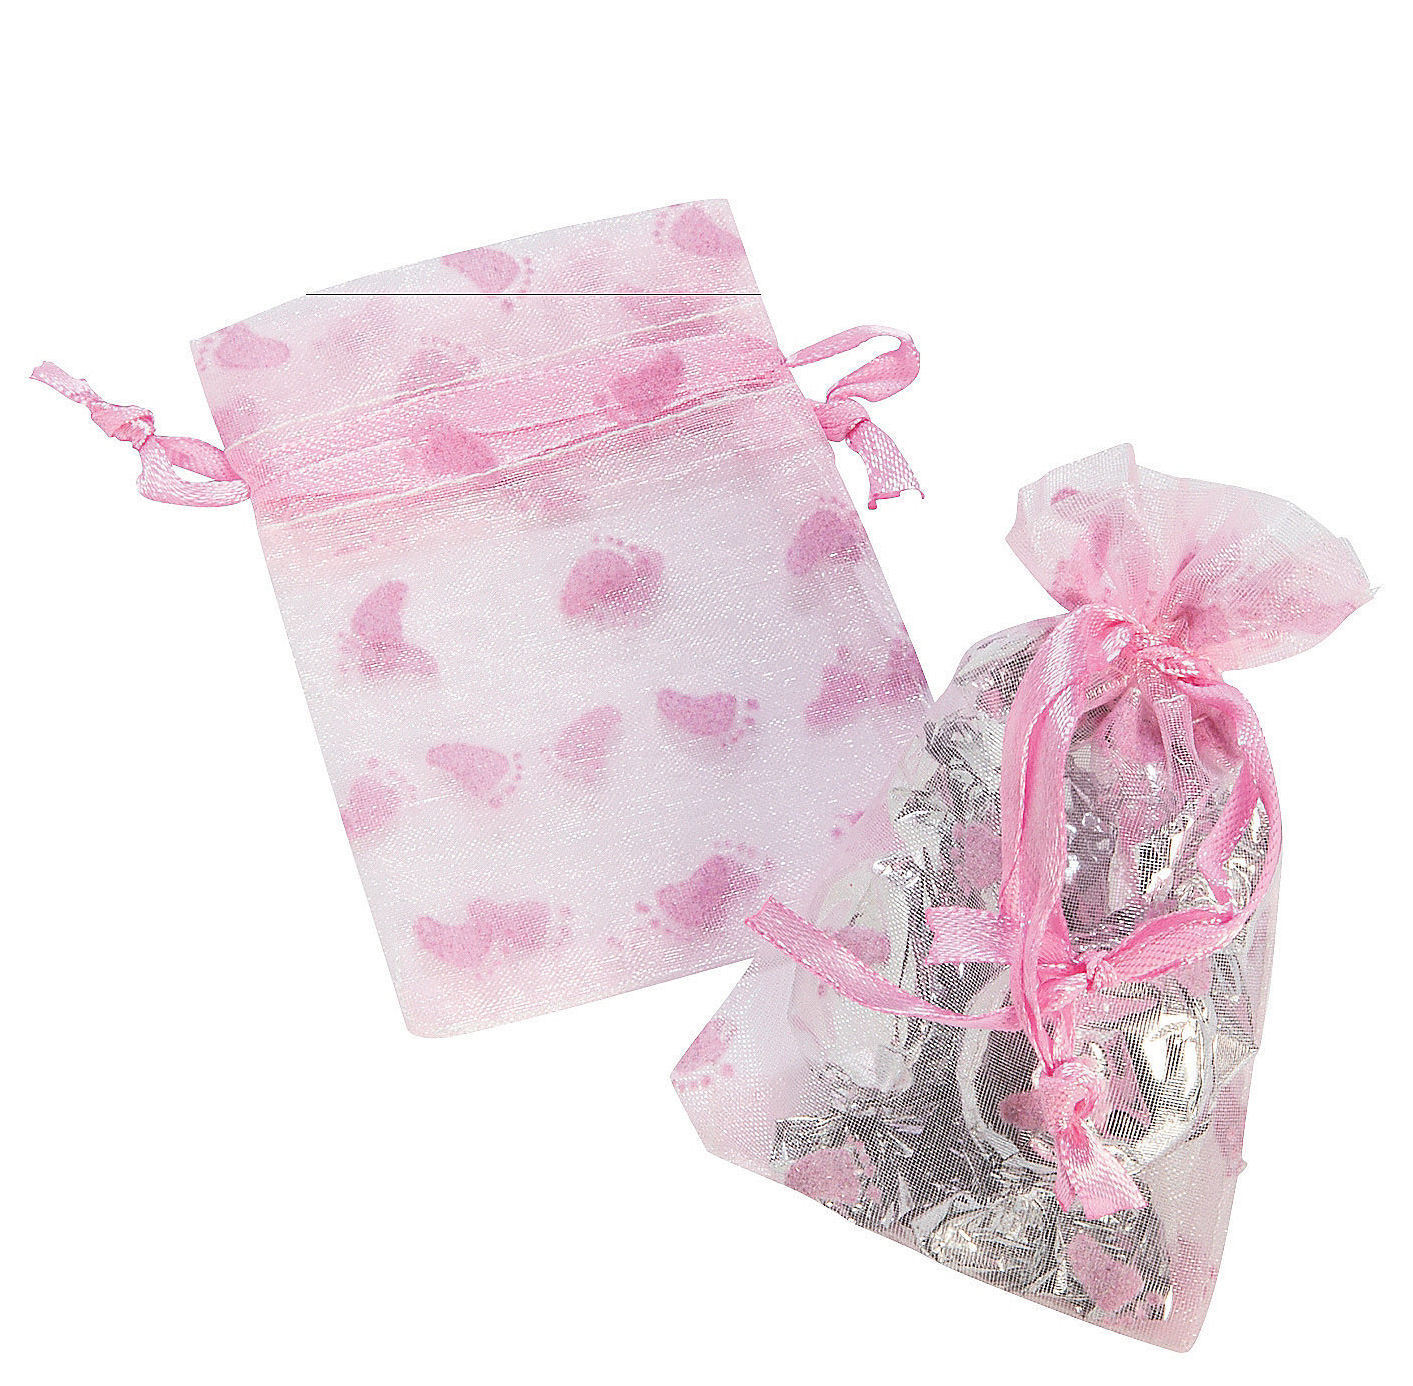 24 PINK Girl Baby Shower Footprint Organza Bags Drawstring Party ...